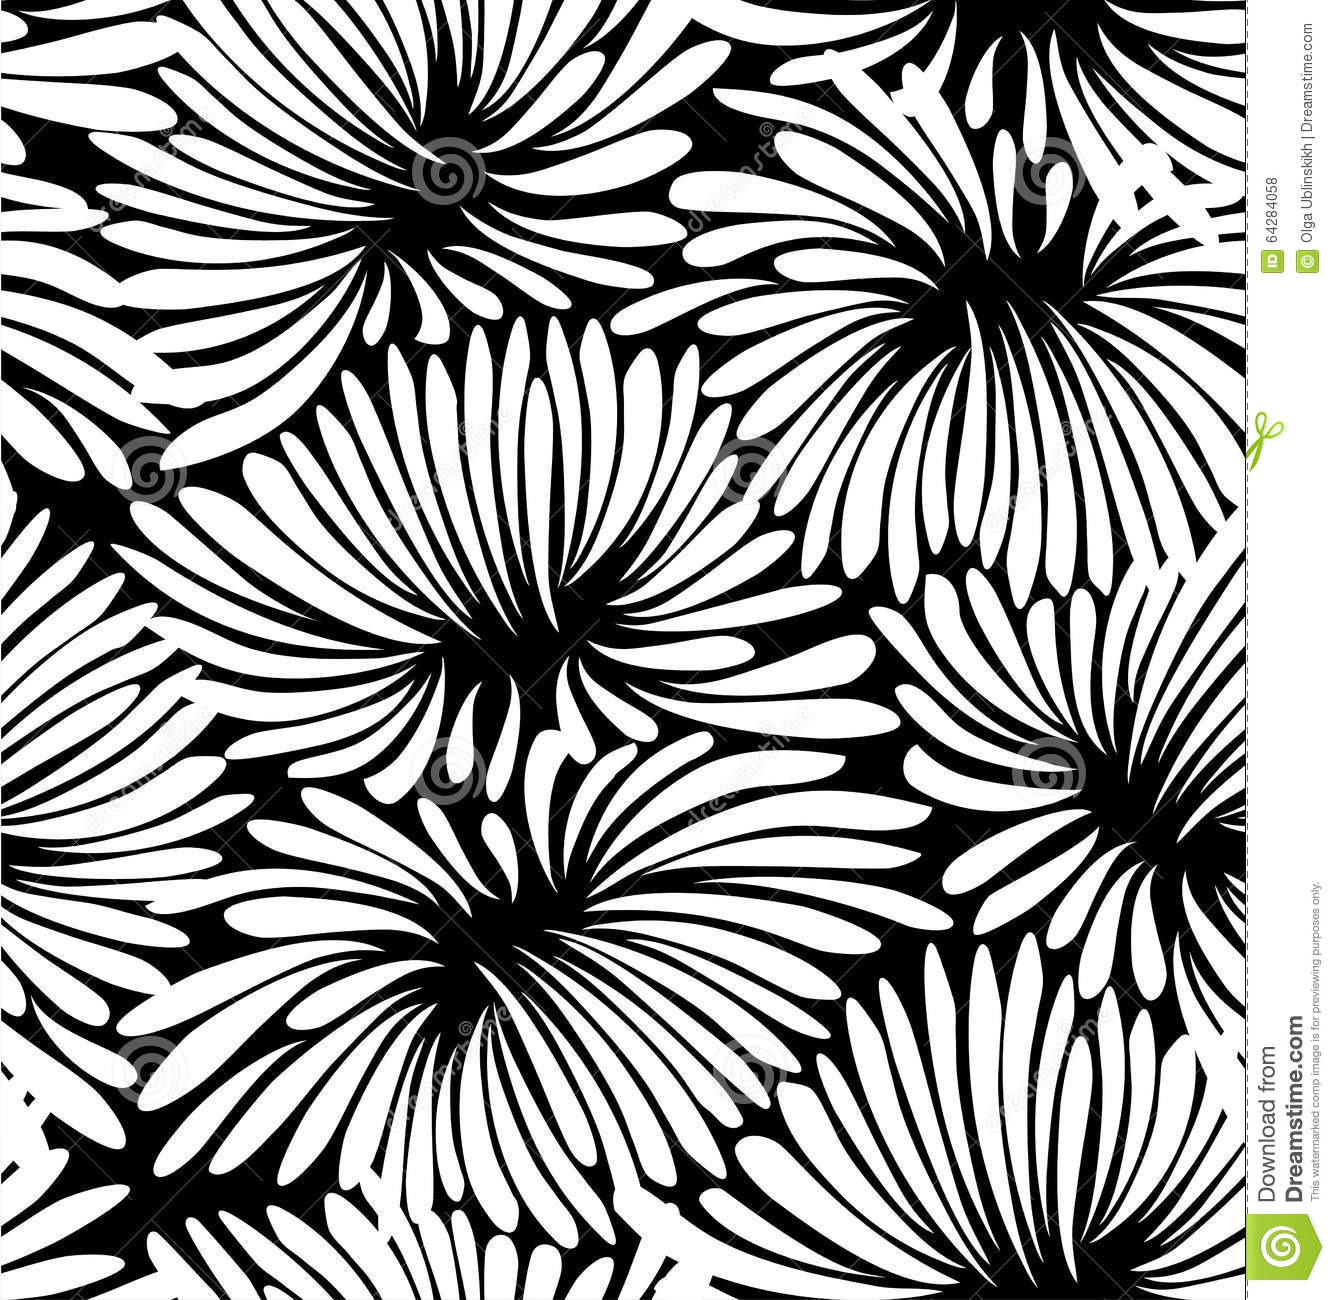 Abstract Black And White Floral Background Illustration 64284058